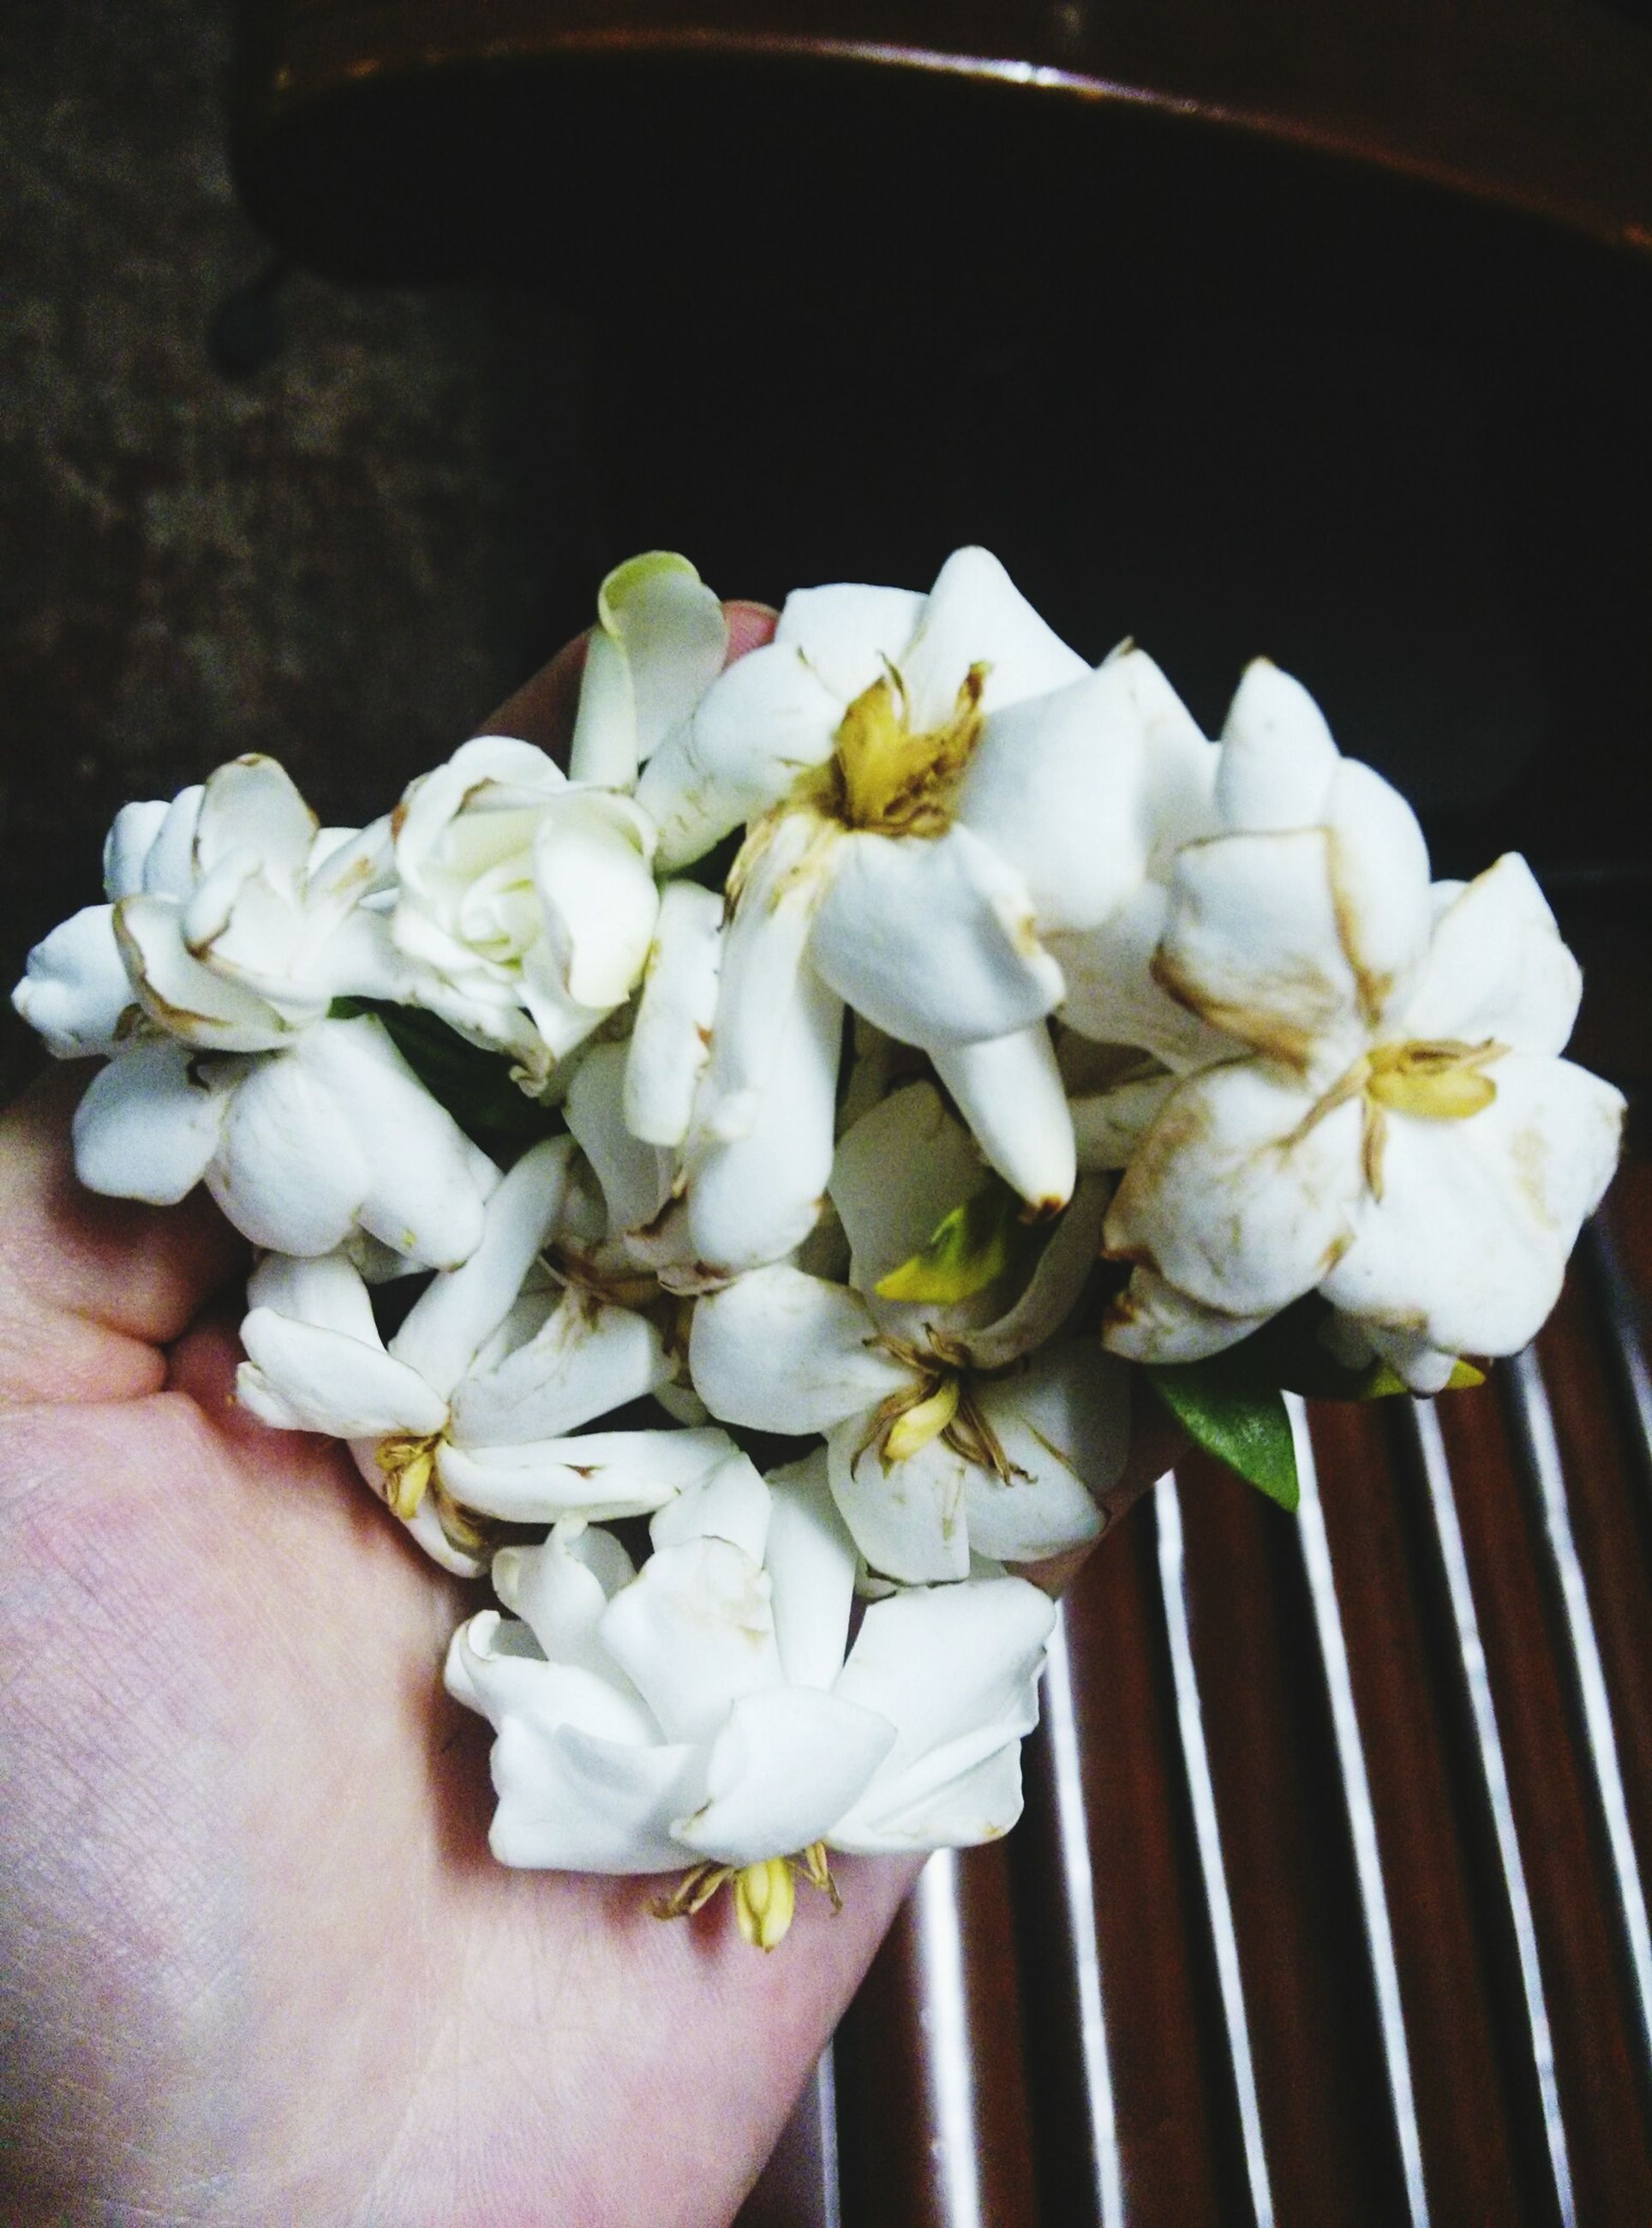 flower, person, freshness, petal, fragility, holding, white color, flower head, part of, personal perspective, cropped, unrecognizable person, close-up, beauty in nature, blossom, human finger, high angle view